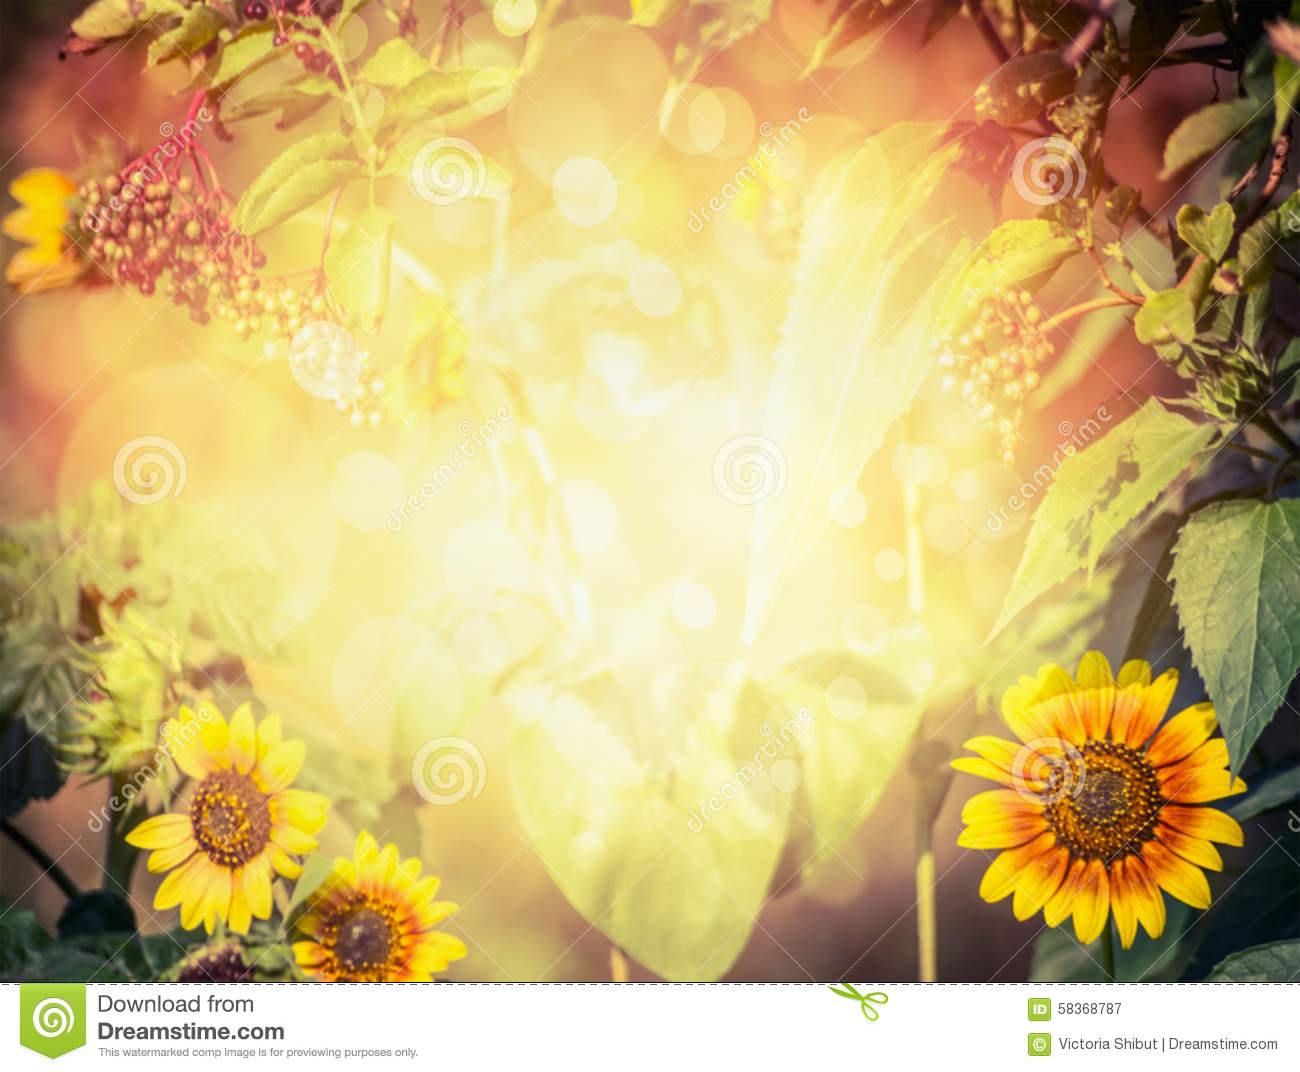 Autumn or summer blurred nature background with sunflowers, leaves,elder and foliage with sunlight